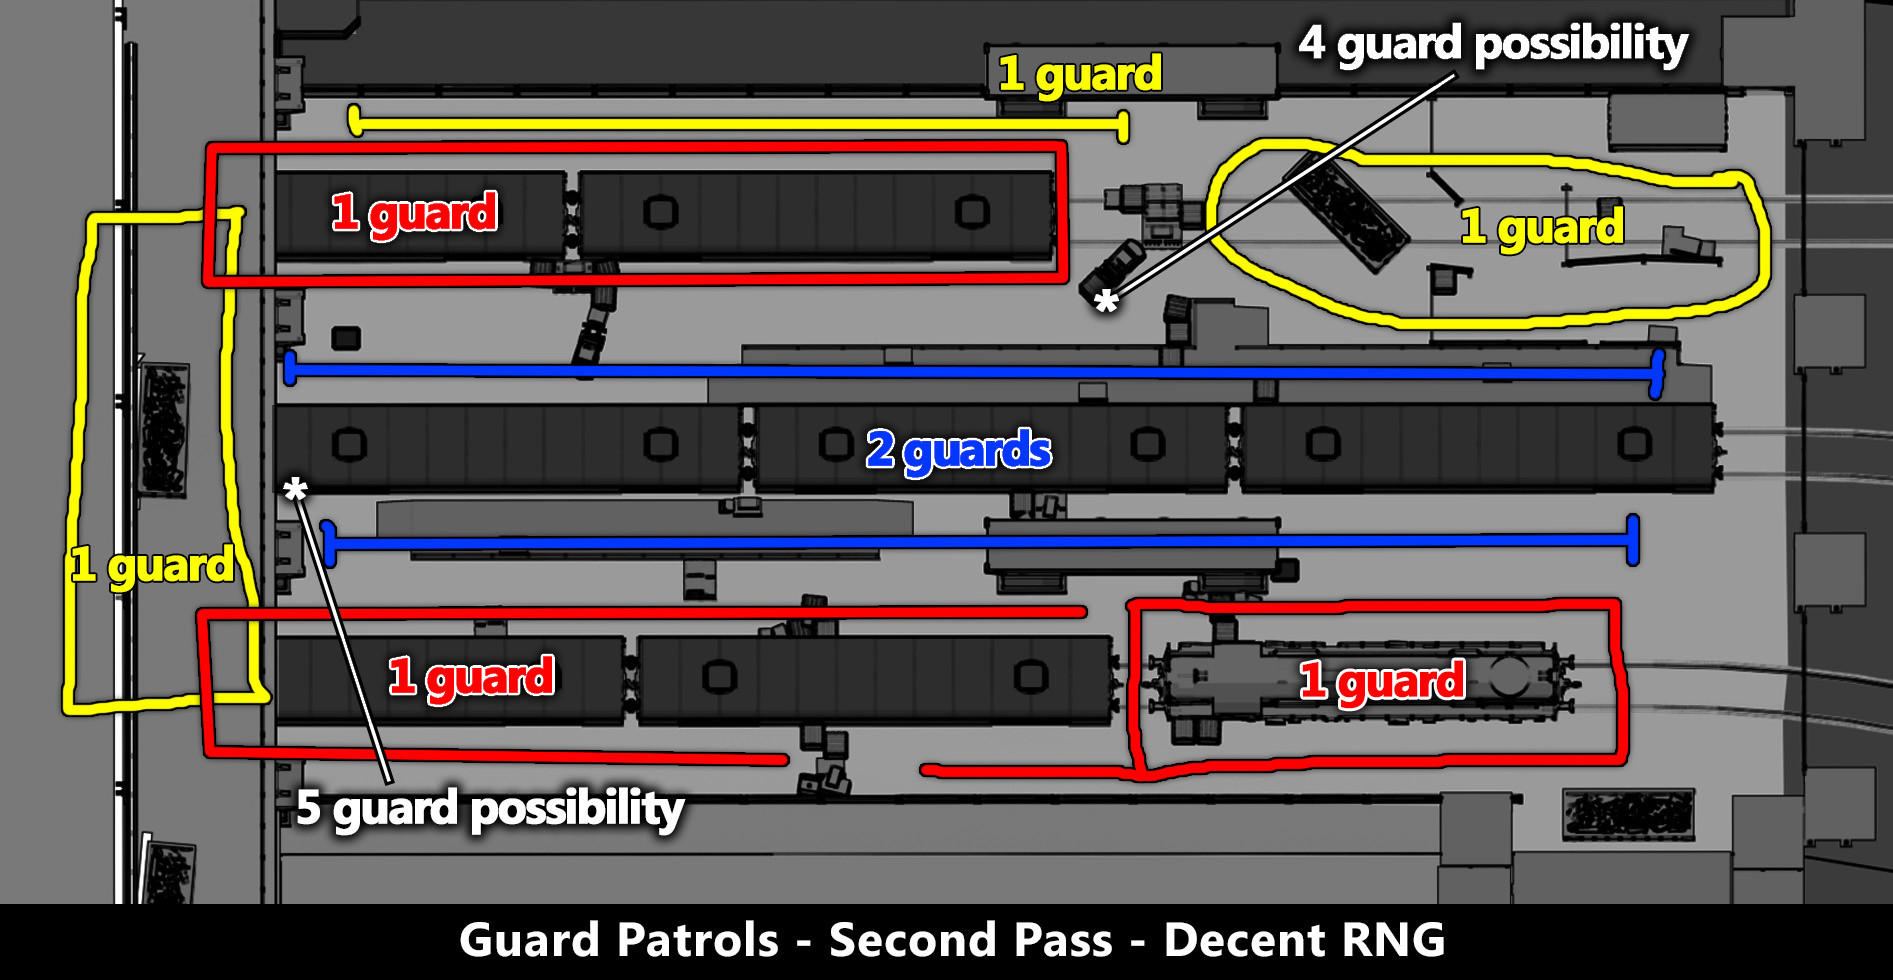 guard_patrol_second_pass.jpg.8436e8c100b11efd68ad5c0c68470bd7.jpg